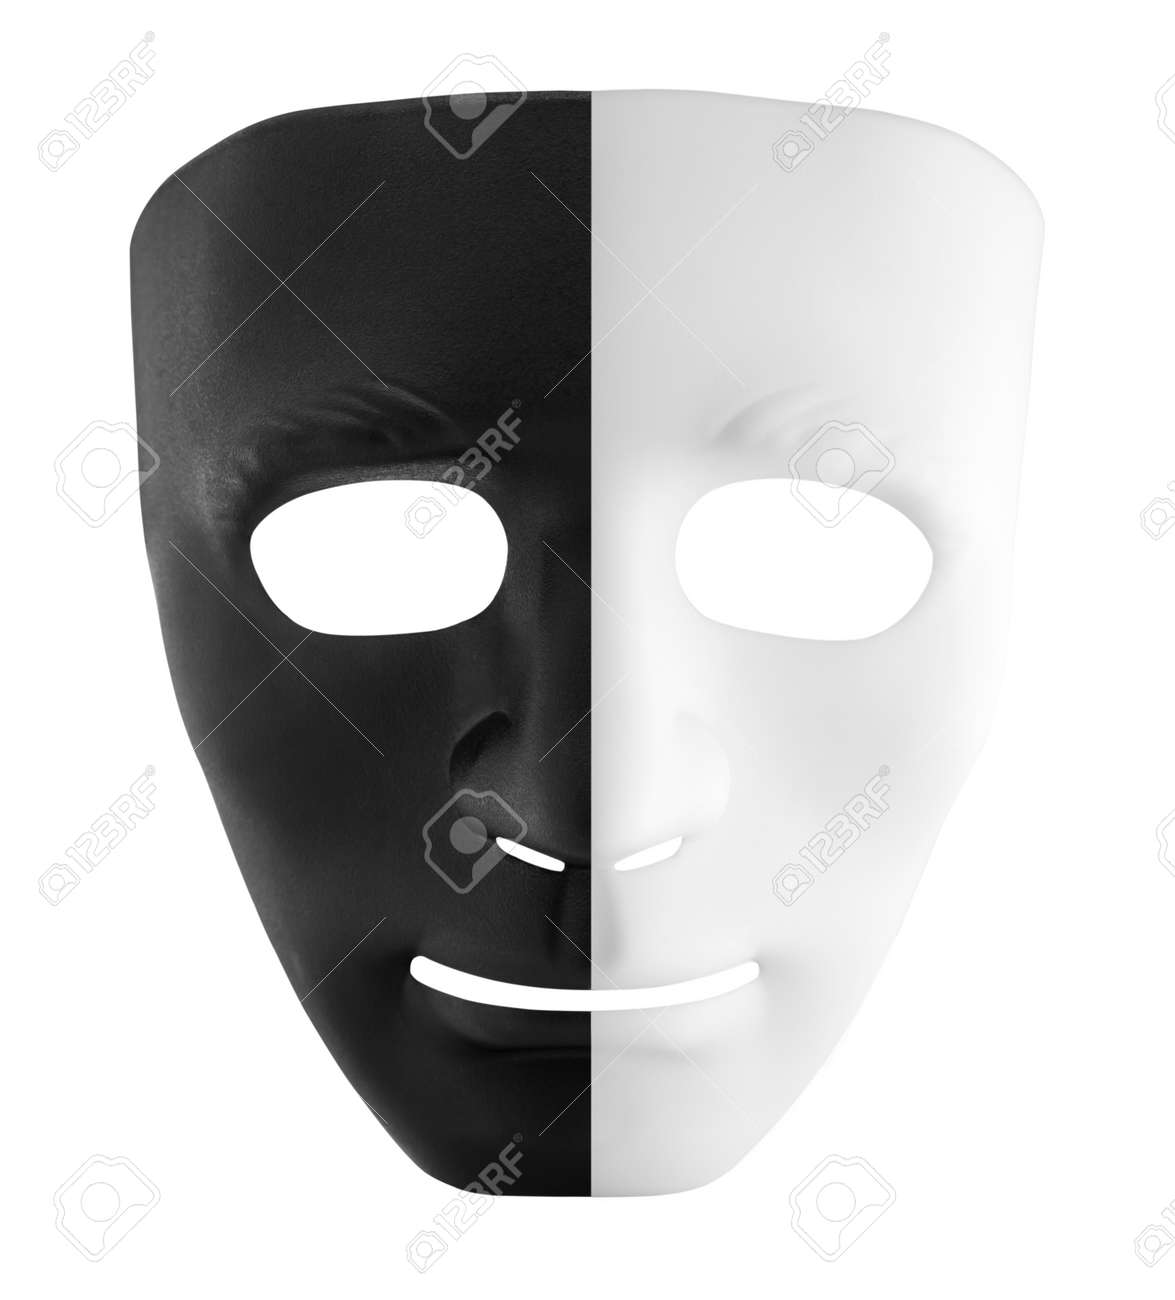 Black and White Mask